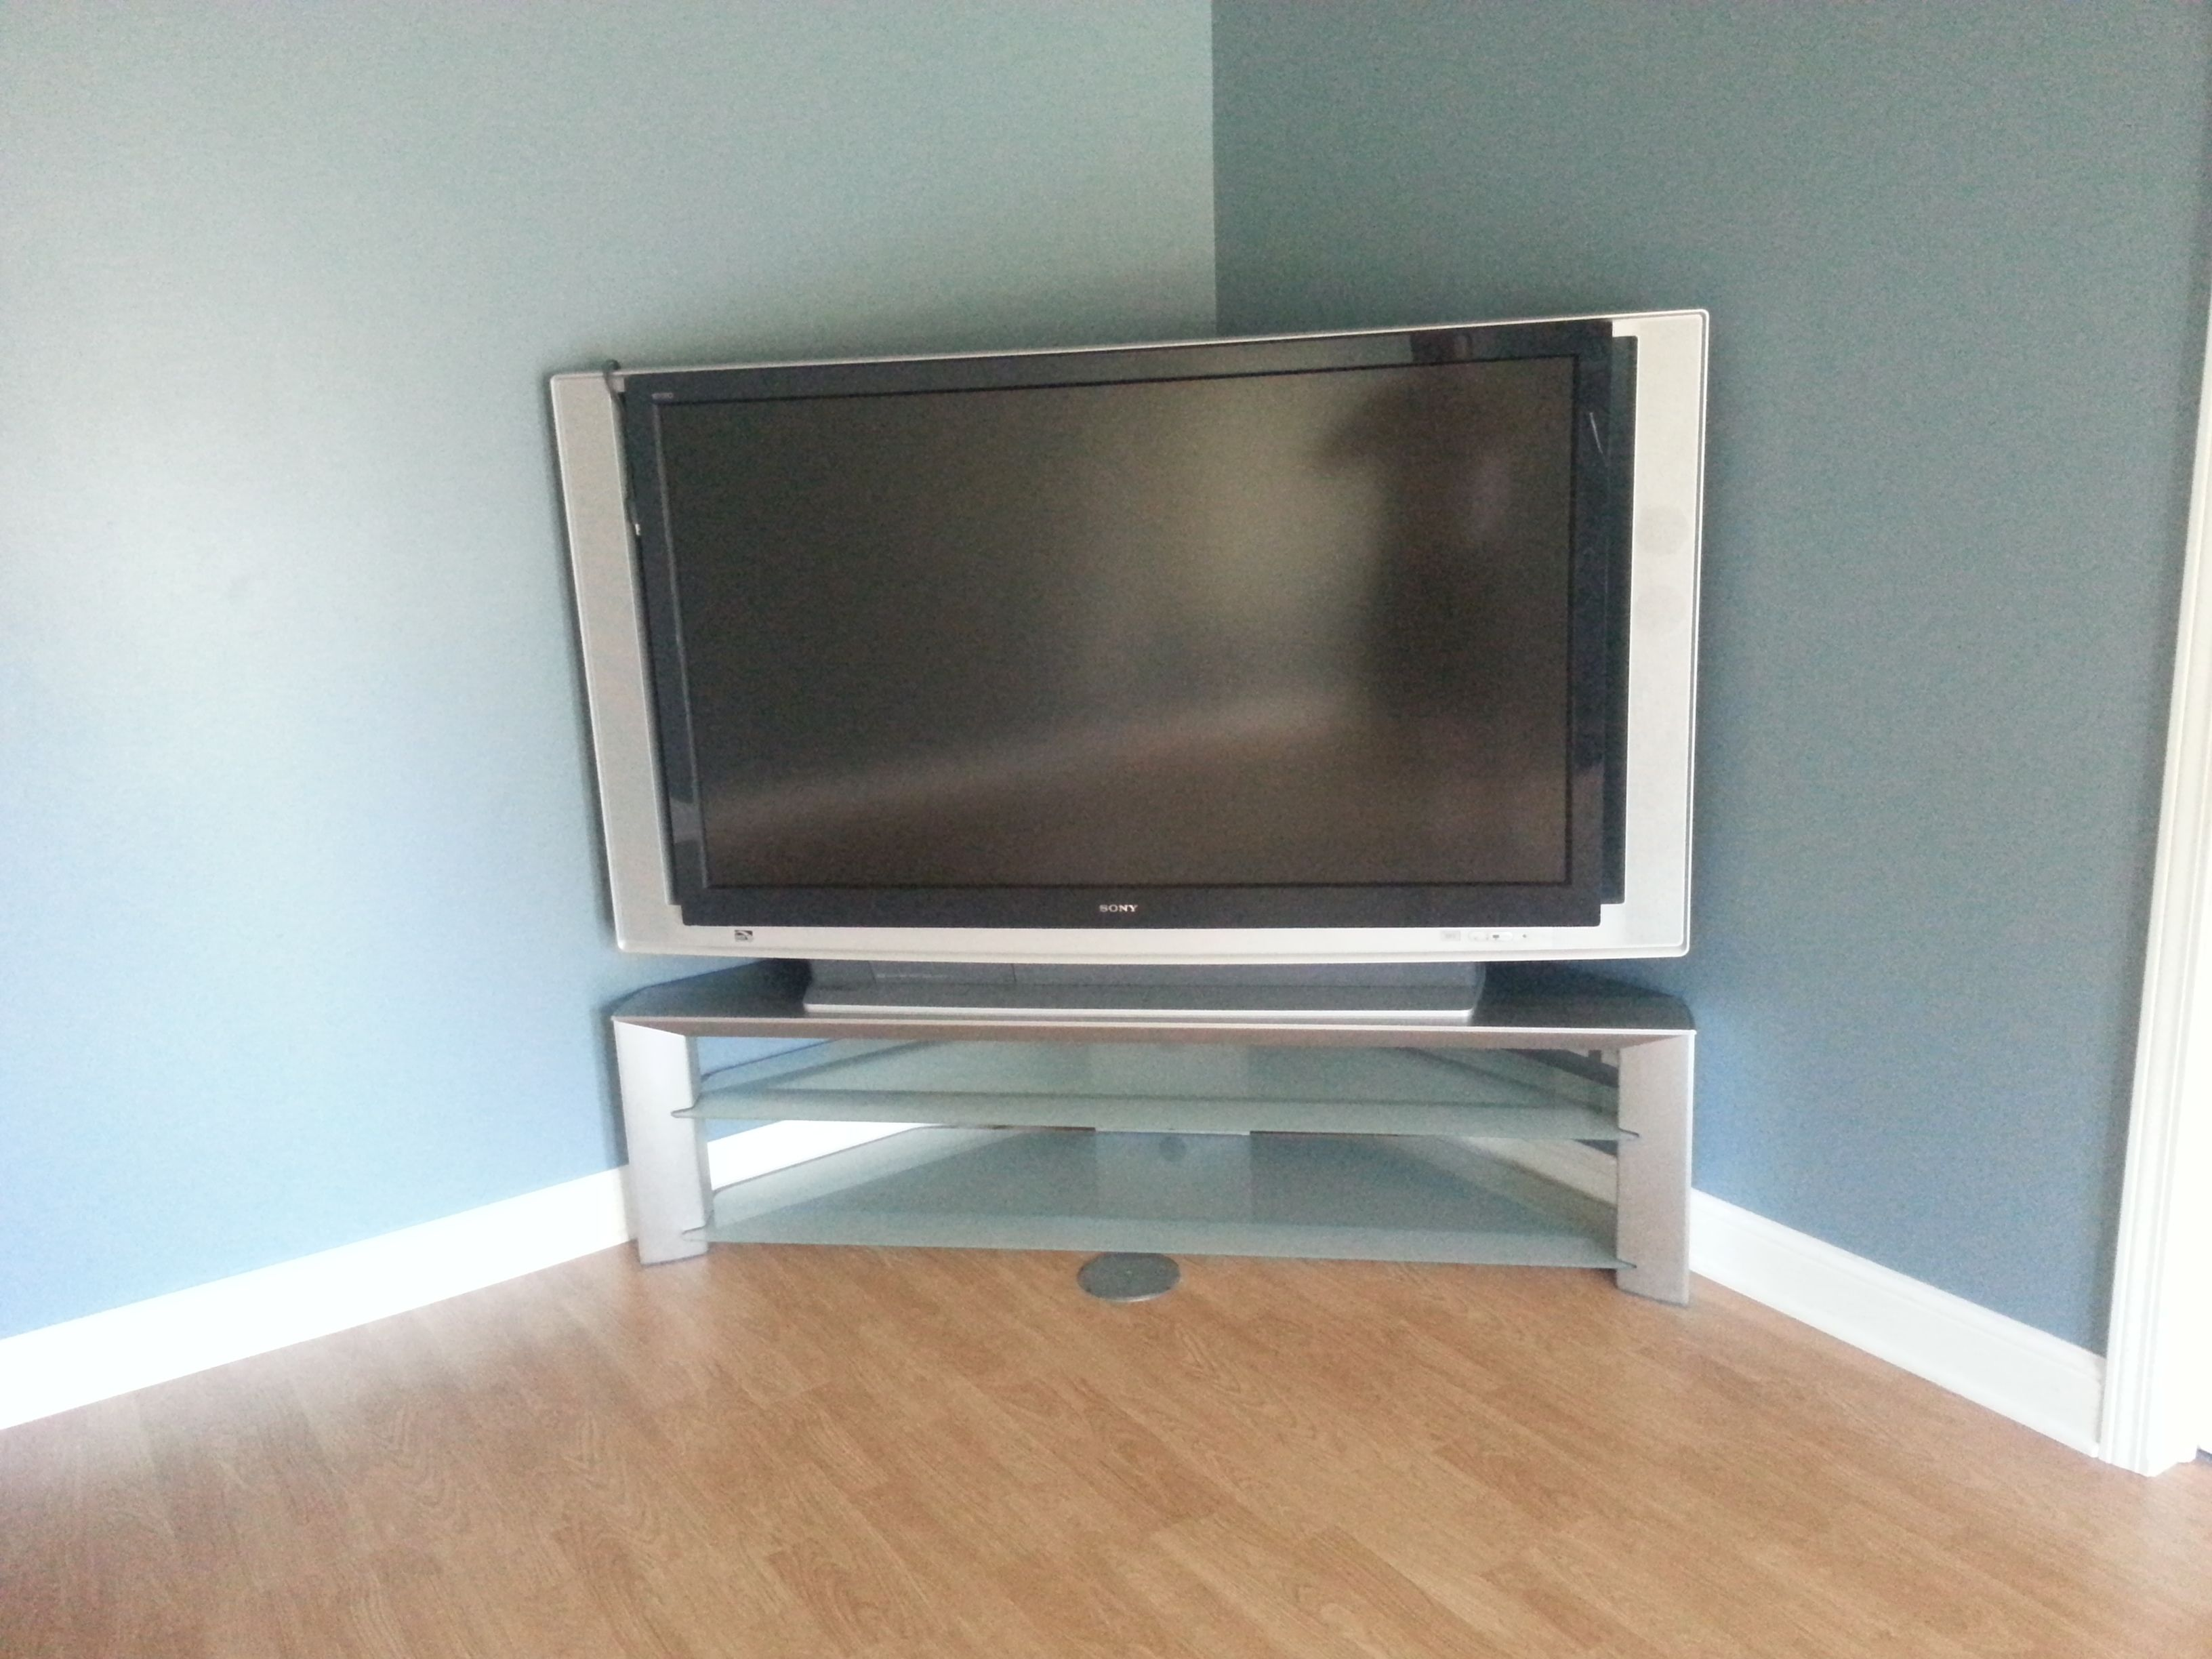 Sony SXRD 60 Inch Projection TV